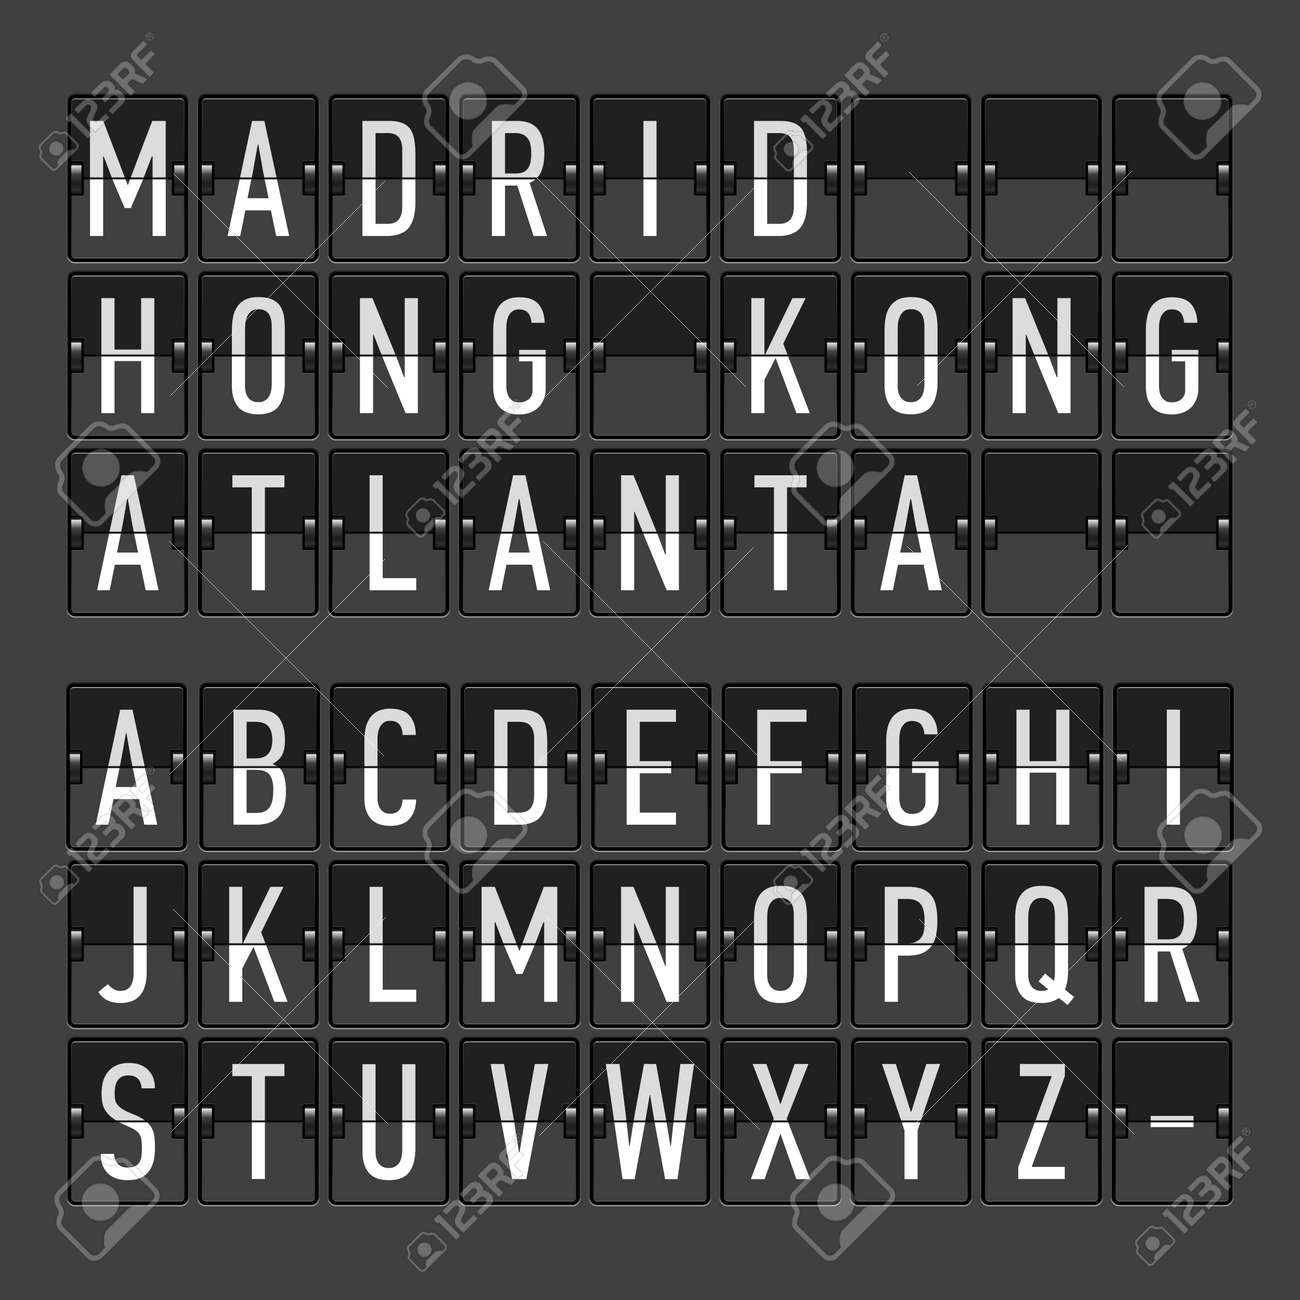 Airport terminal arrival departure timetable, information board, display alphabet - 26262492